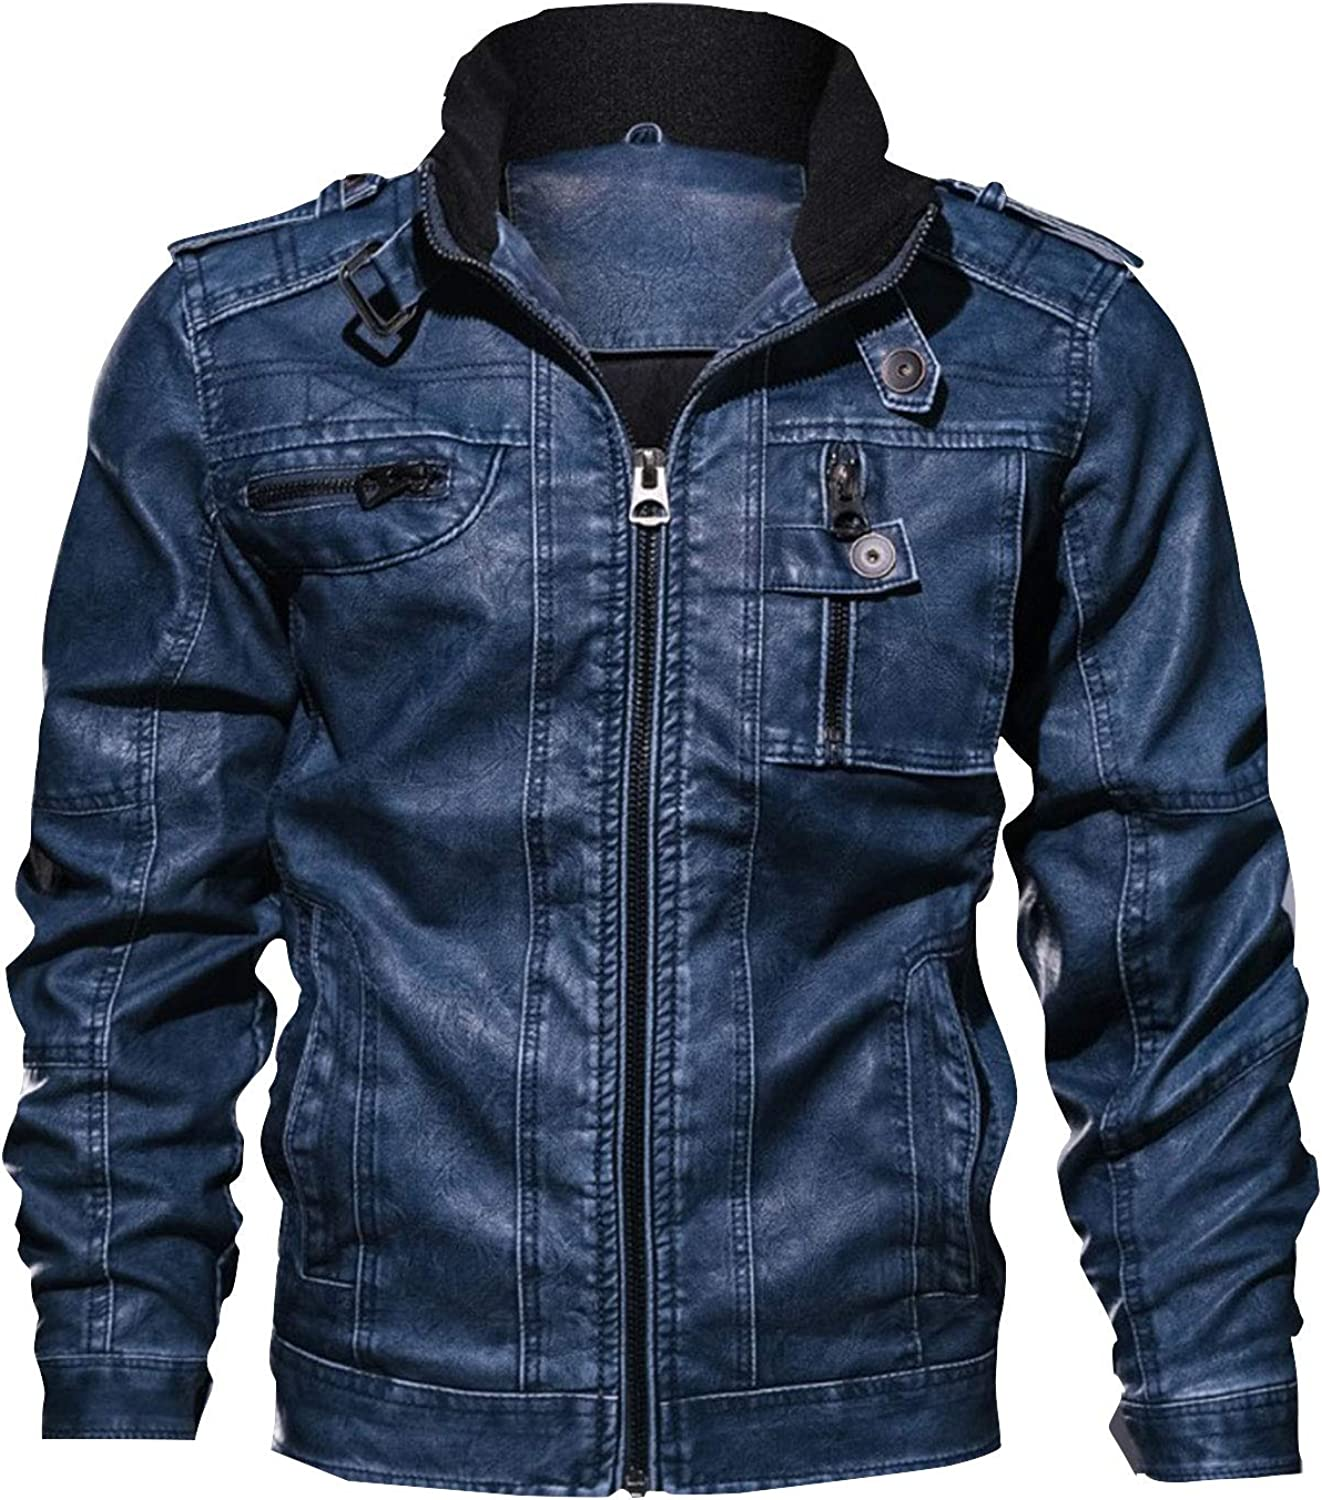 Safeeye Men's Faux Leather Max 55% OFF Moto Outdoor Jackets Casual Baltimore Mall Recreatio